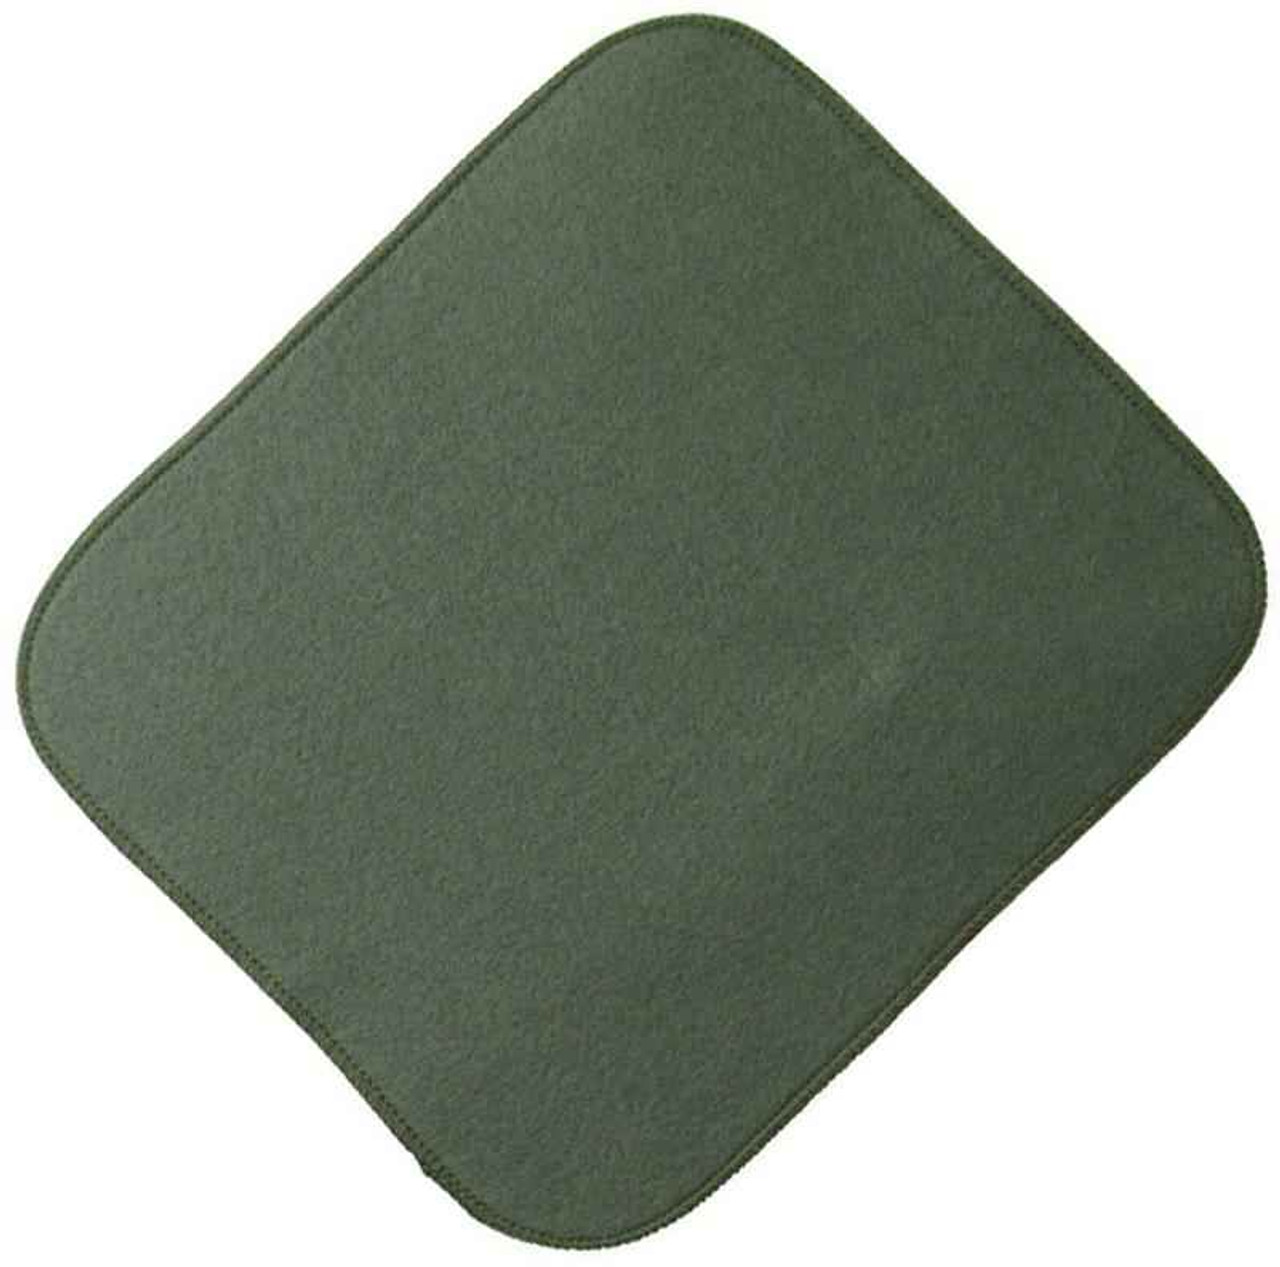 """ABKT AB056 Tac Tactical Gun Cleaning Mat - 12"""" x 10"""". 1.5 mil thick. Olive Green"""